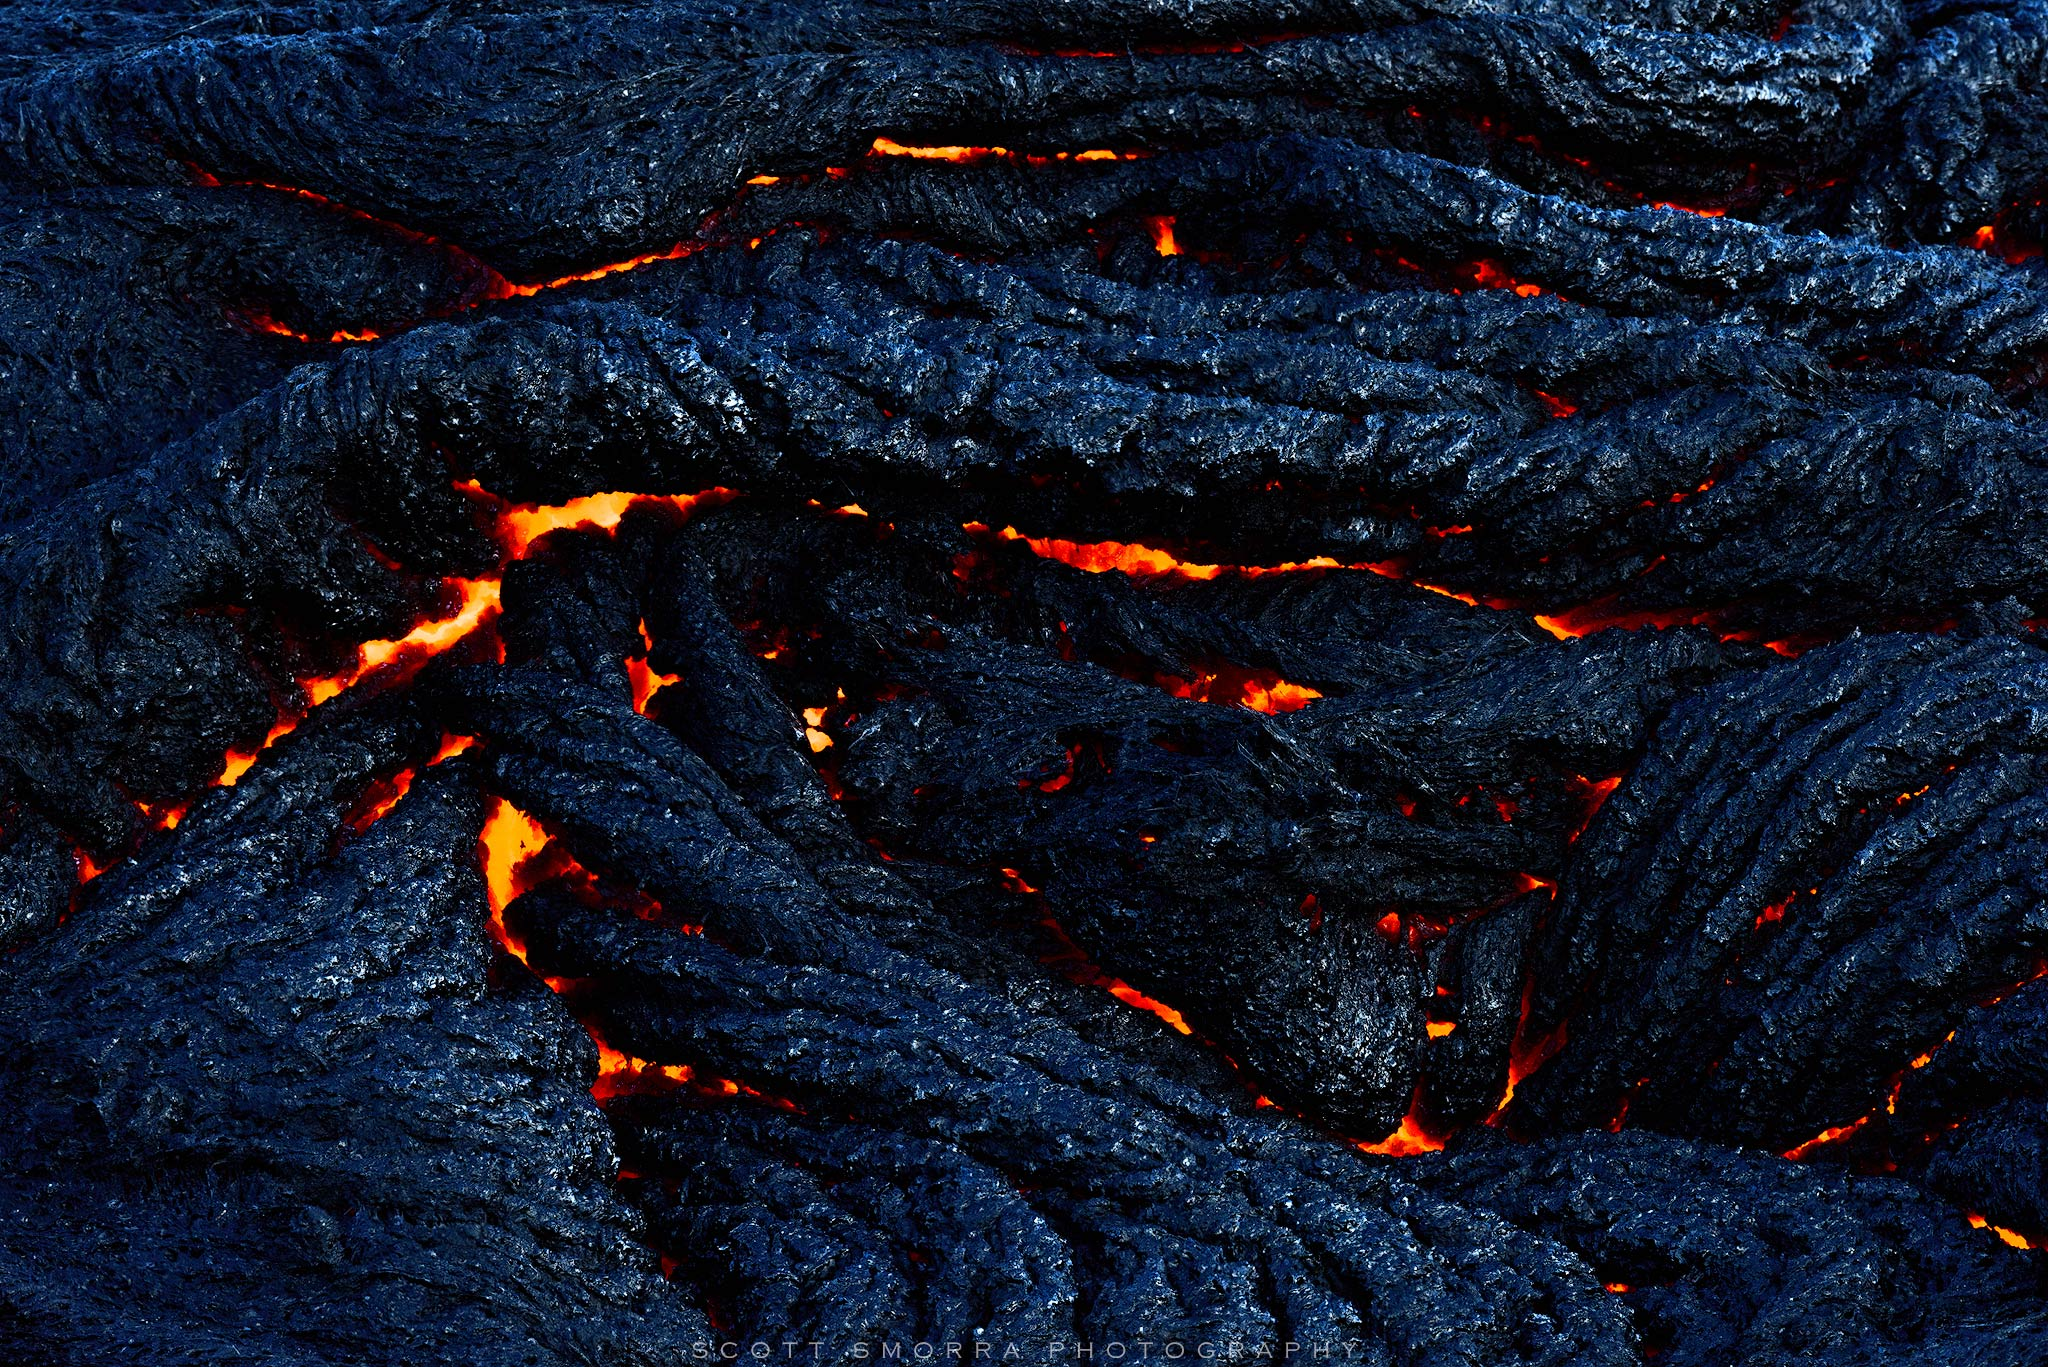 Fine Art Limited Edition of 50 - Glowing lava on the Kilauea 61G Lava Flow at Kalapana on the Big Island of Hawaii. The surface...